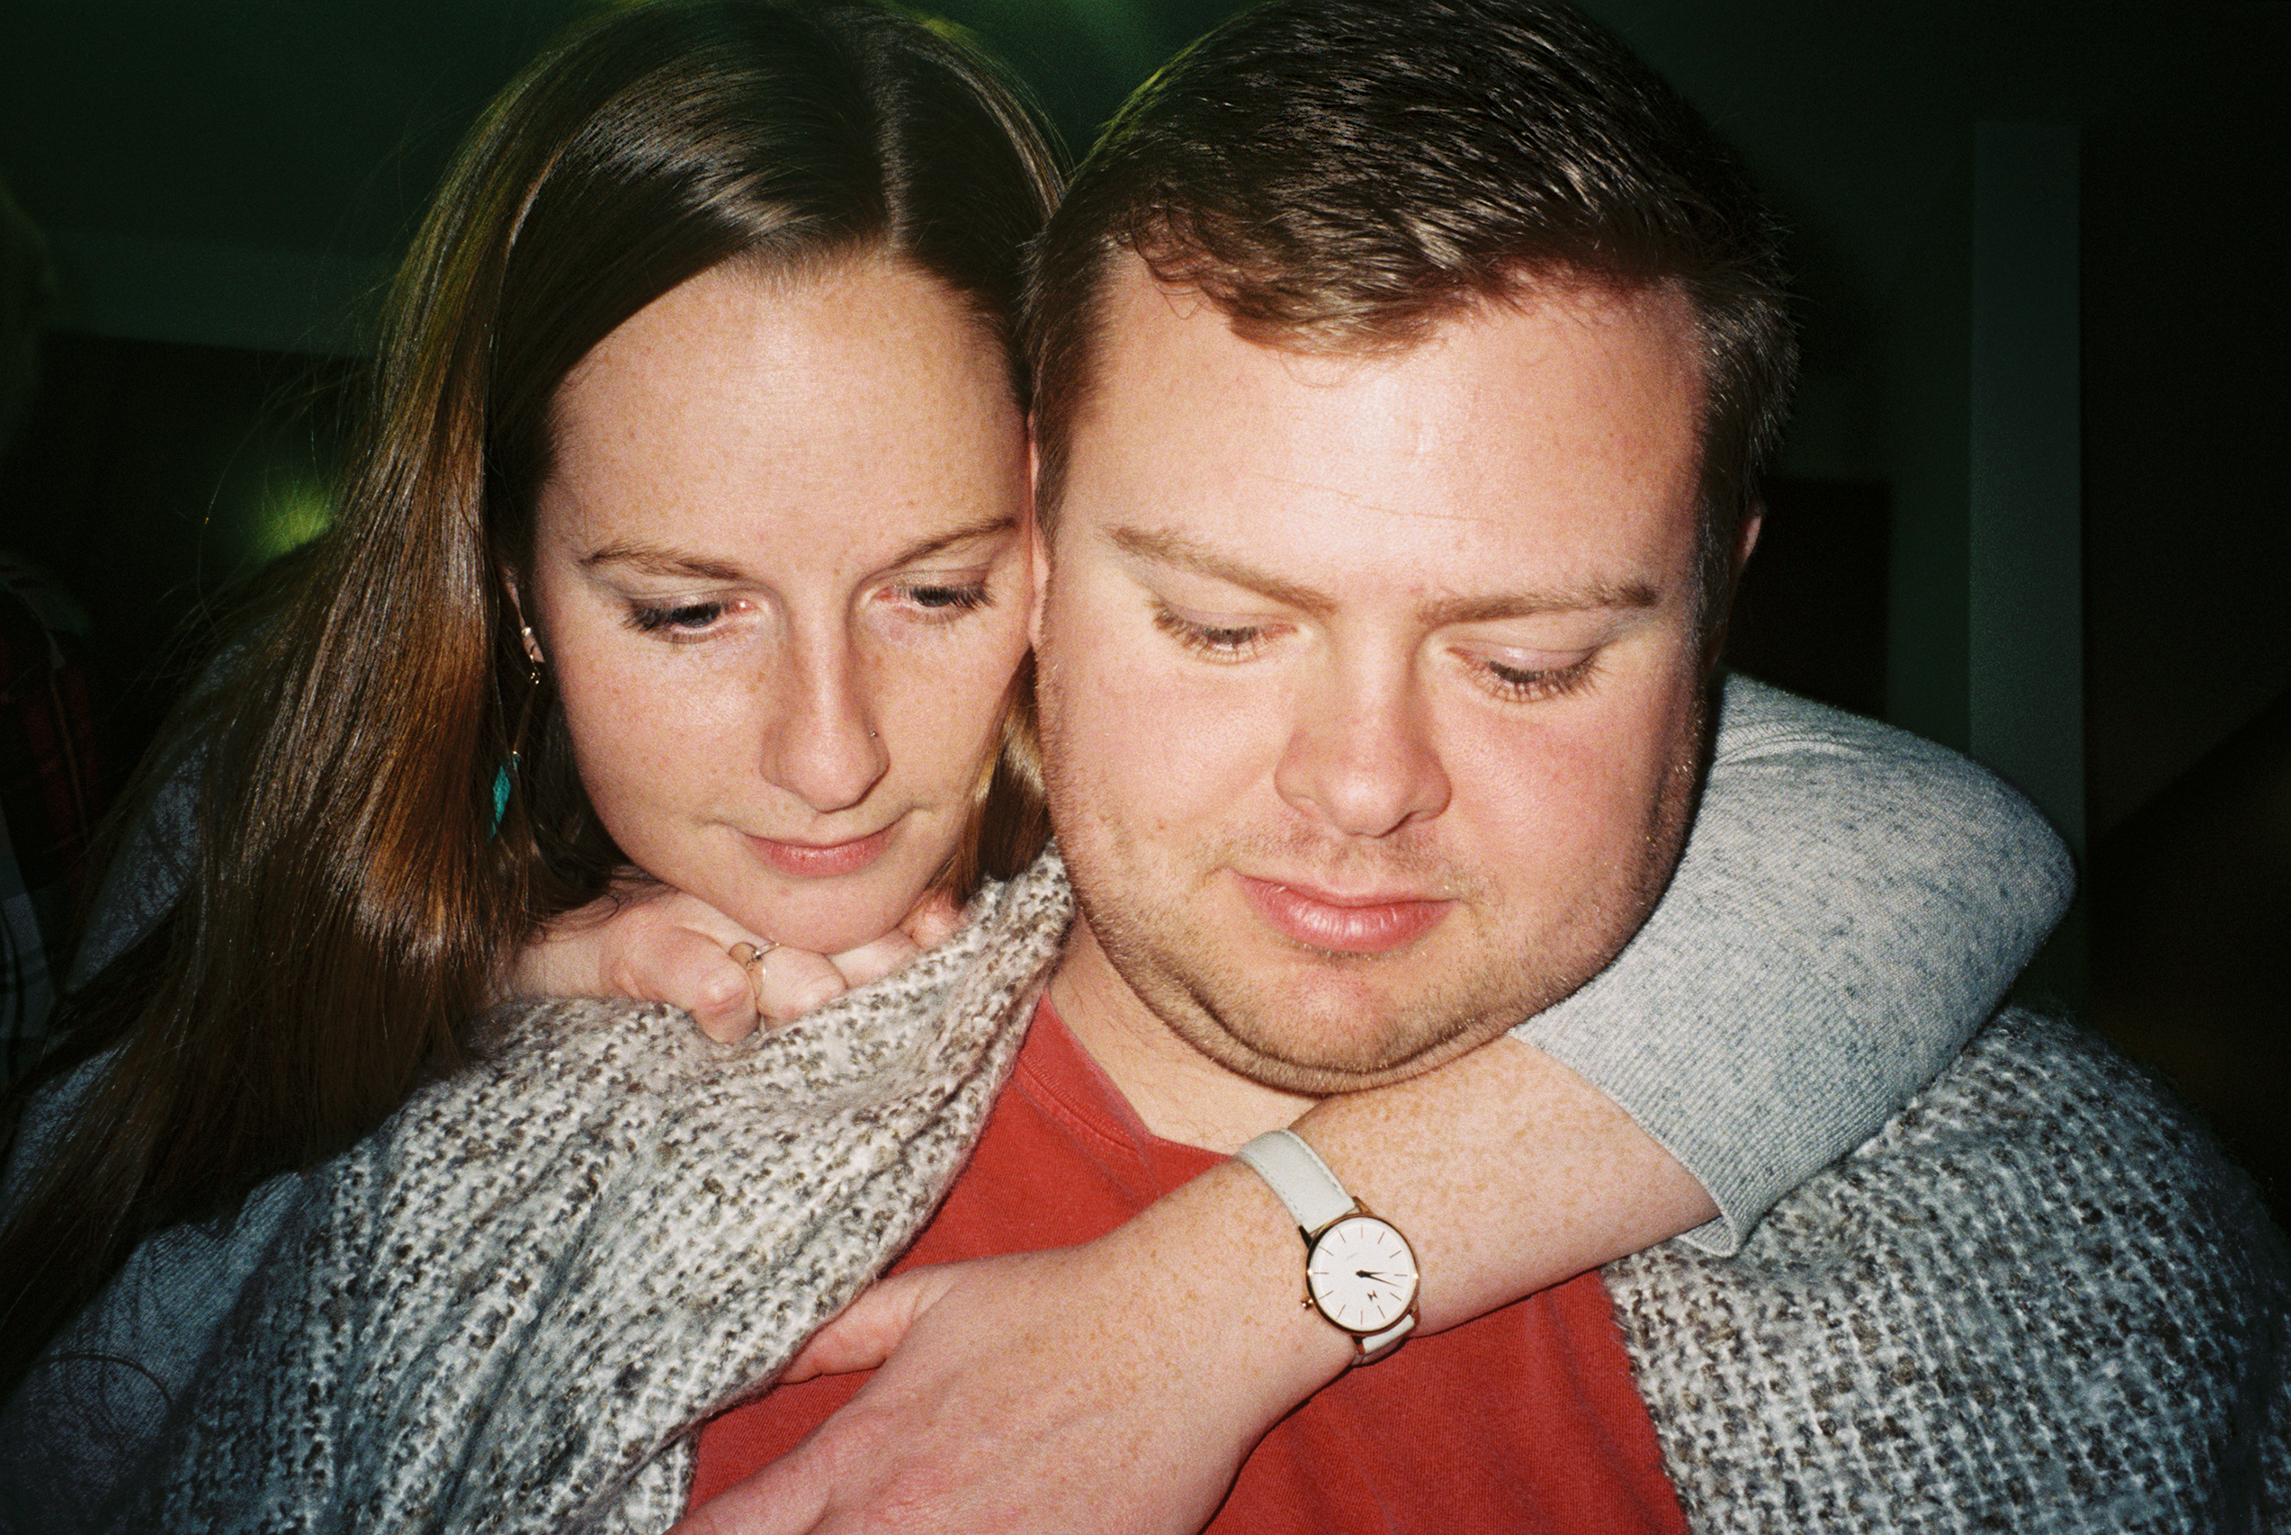 Kelsey snuggles up with her boyfriend, Aaron, during a Super Bowl party at their apartment complex in Indianapolis. The couple has dated for nearly three years. Kelsey works in college admissions and Aaron in commercial real estate.